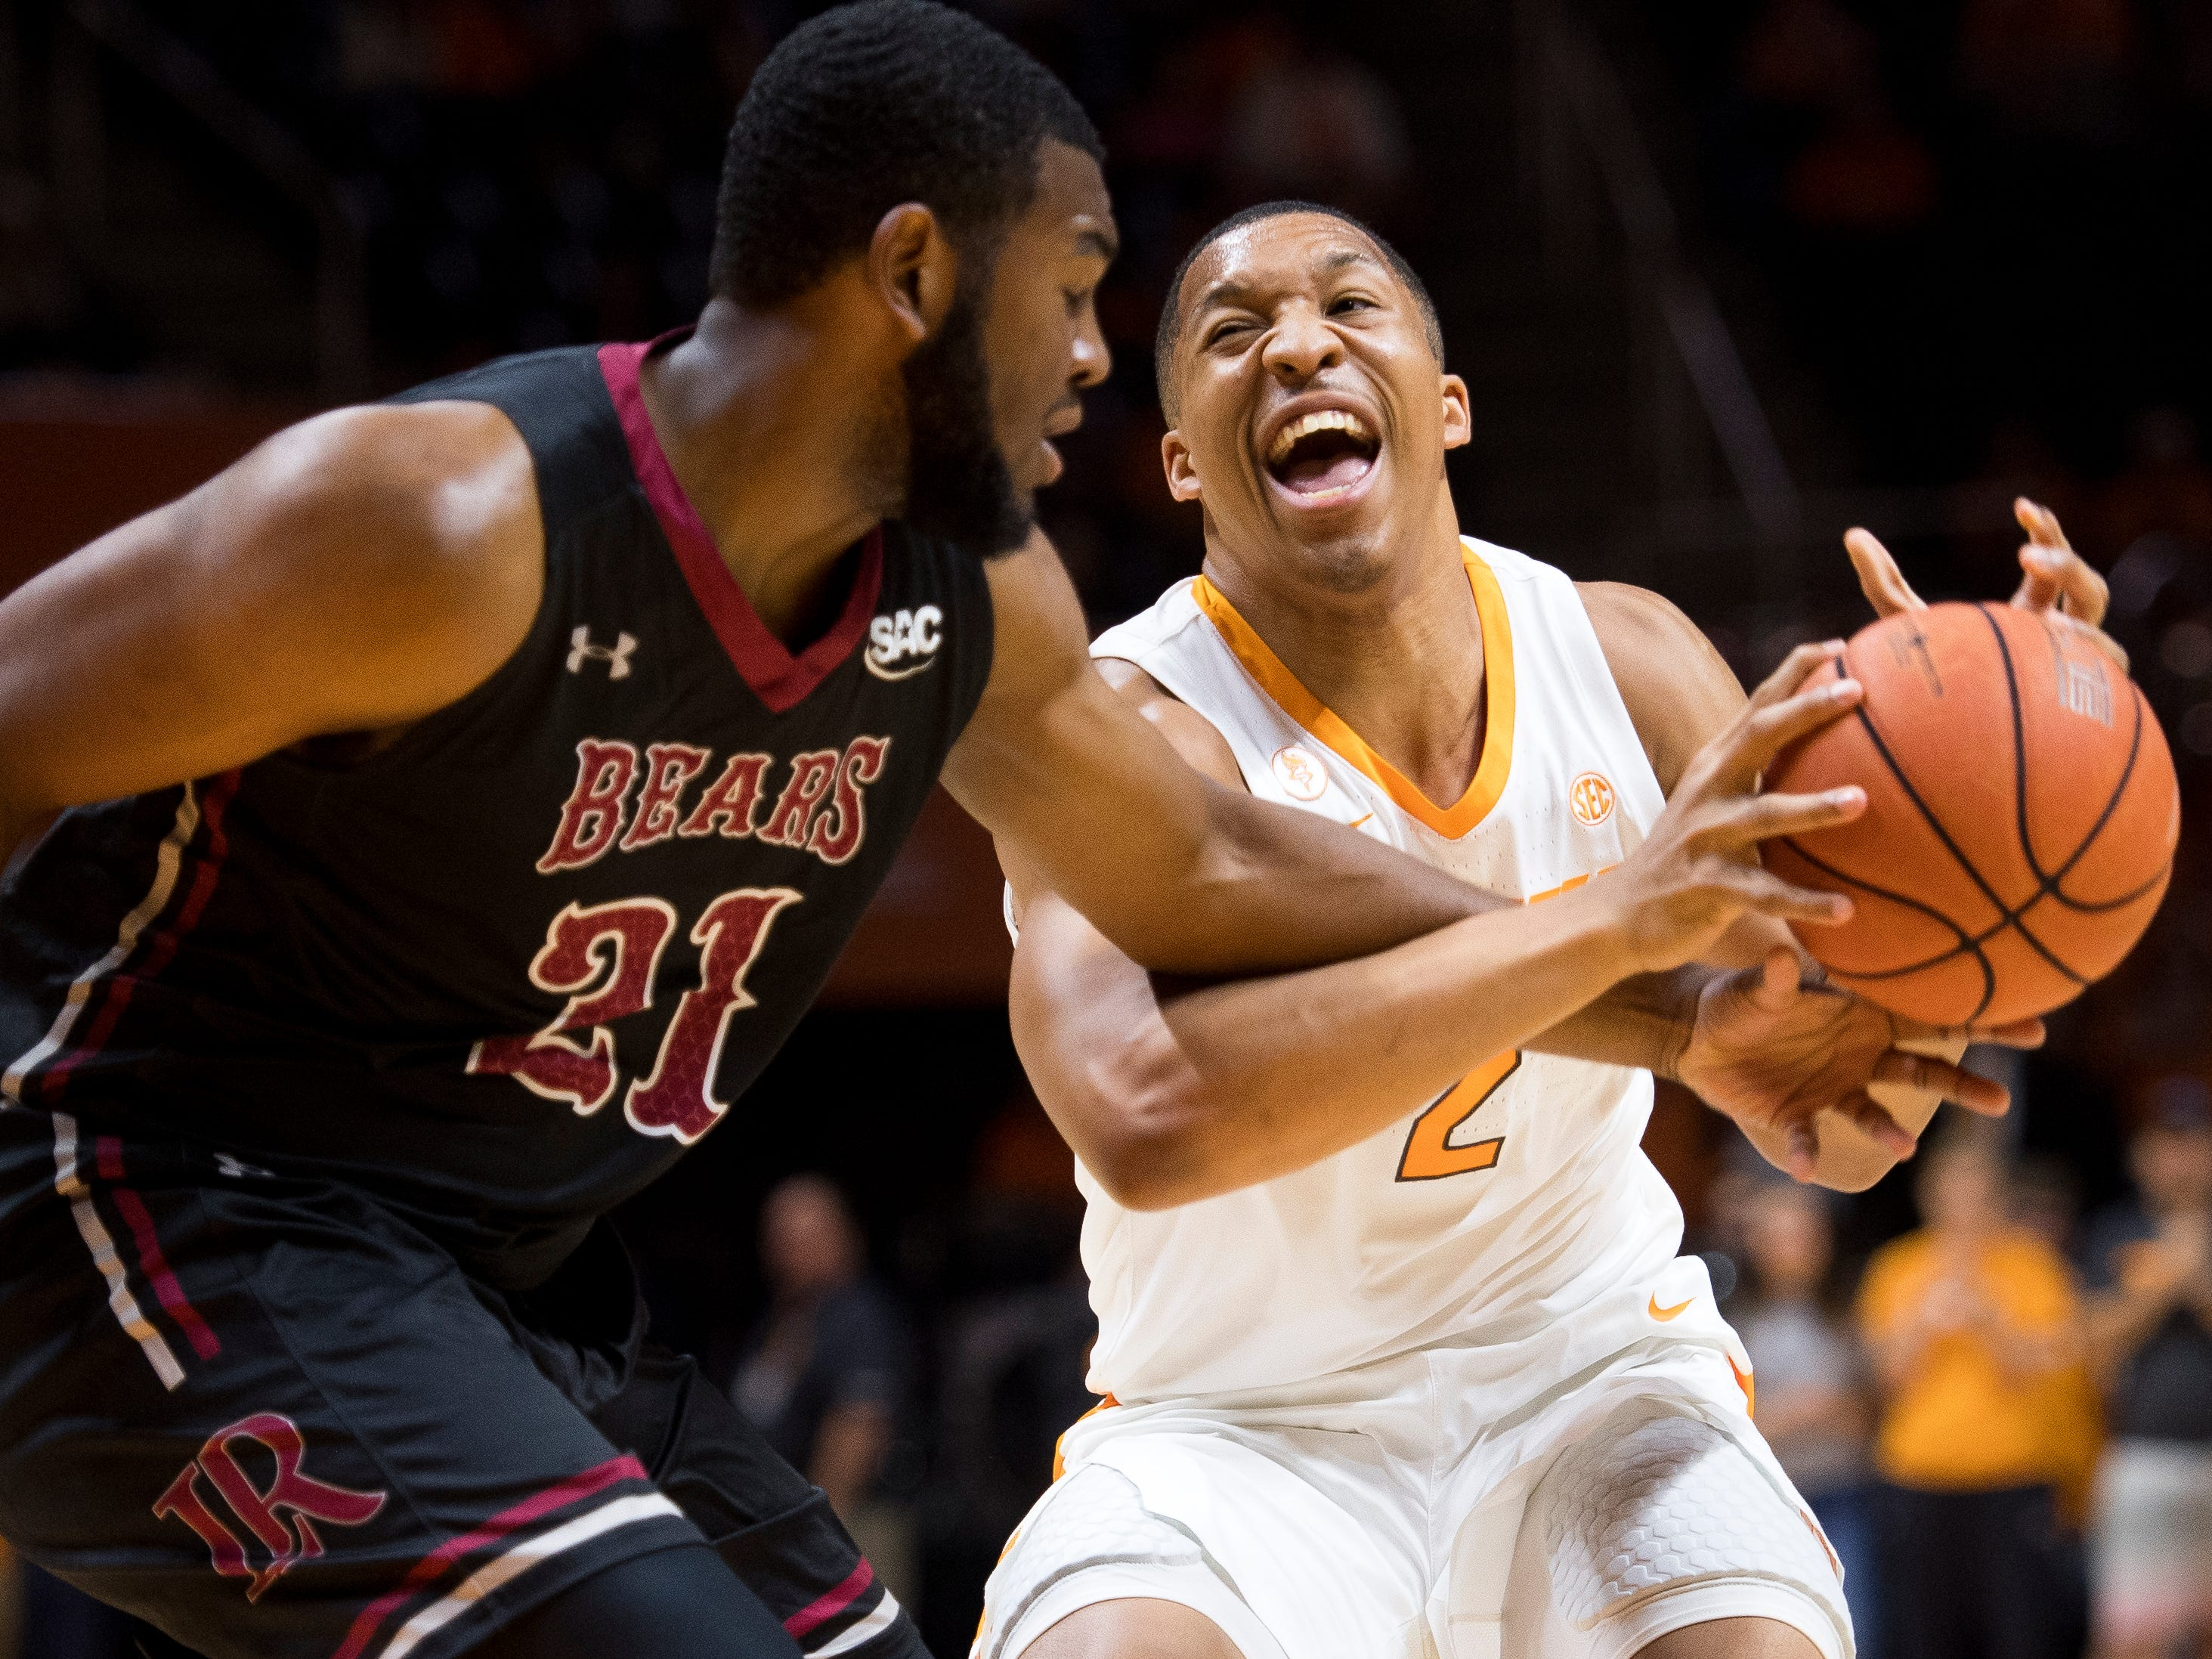 Tennessee forward Grant Williams (2) is fouled by Lenoir-Rhyne guard R.J. Gunn (21) during Tennessee's basketball game against Lenoir-Rhyne at Thompson-Boling Arena in Knoxville on Tuesday, November 6, 2018.